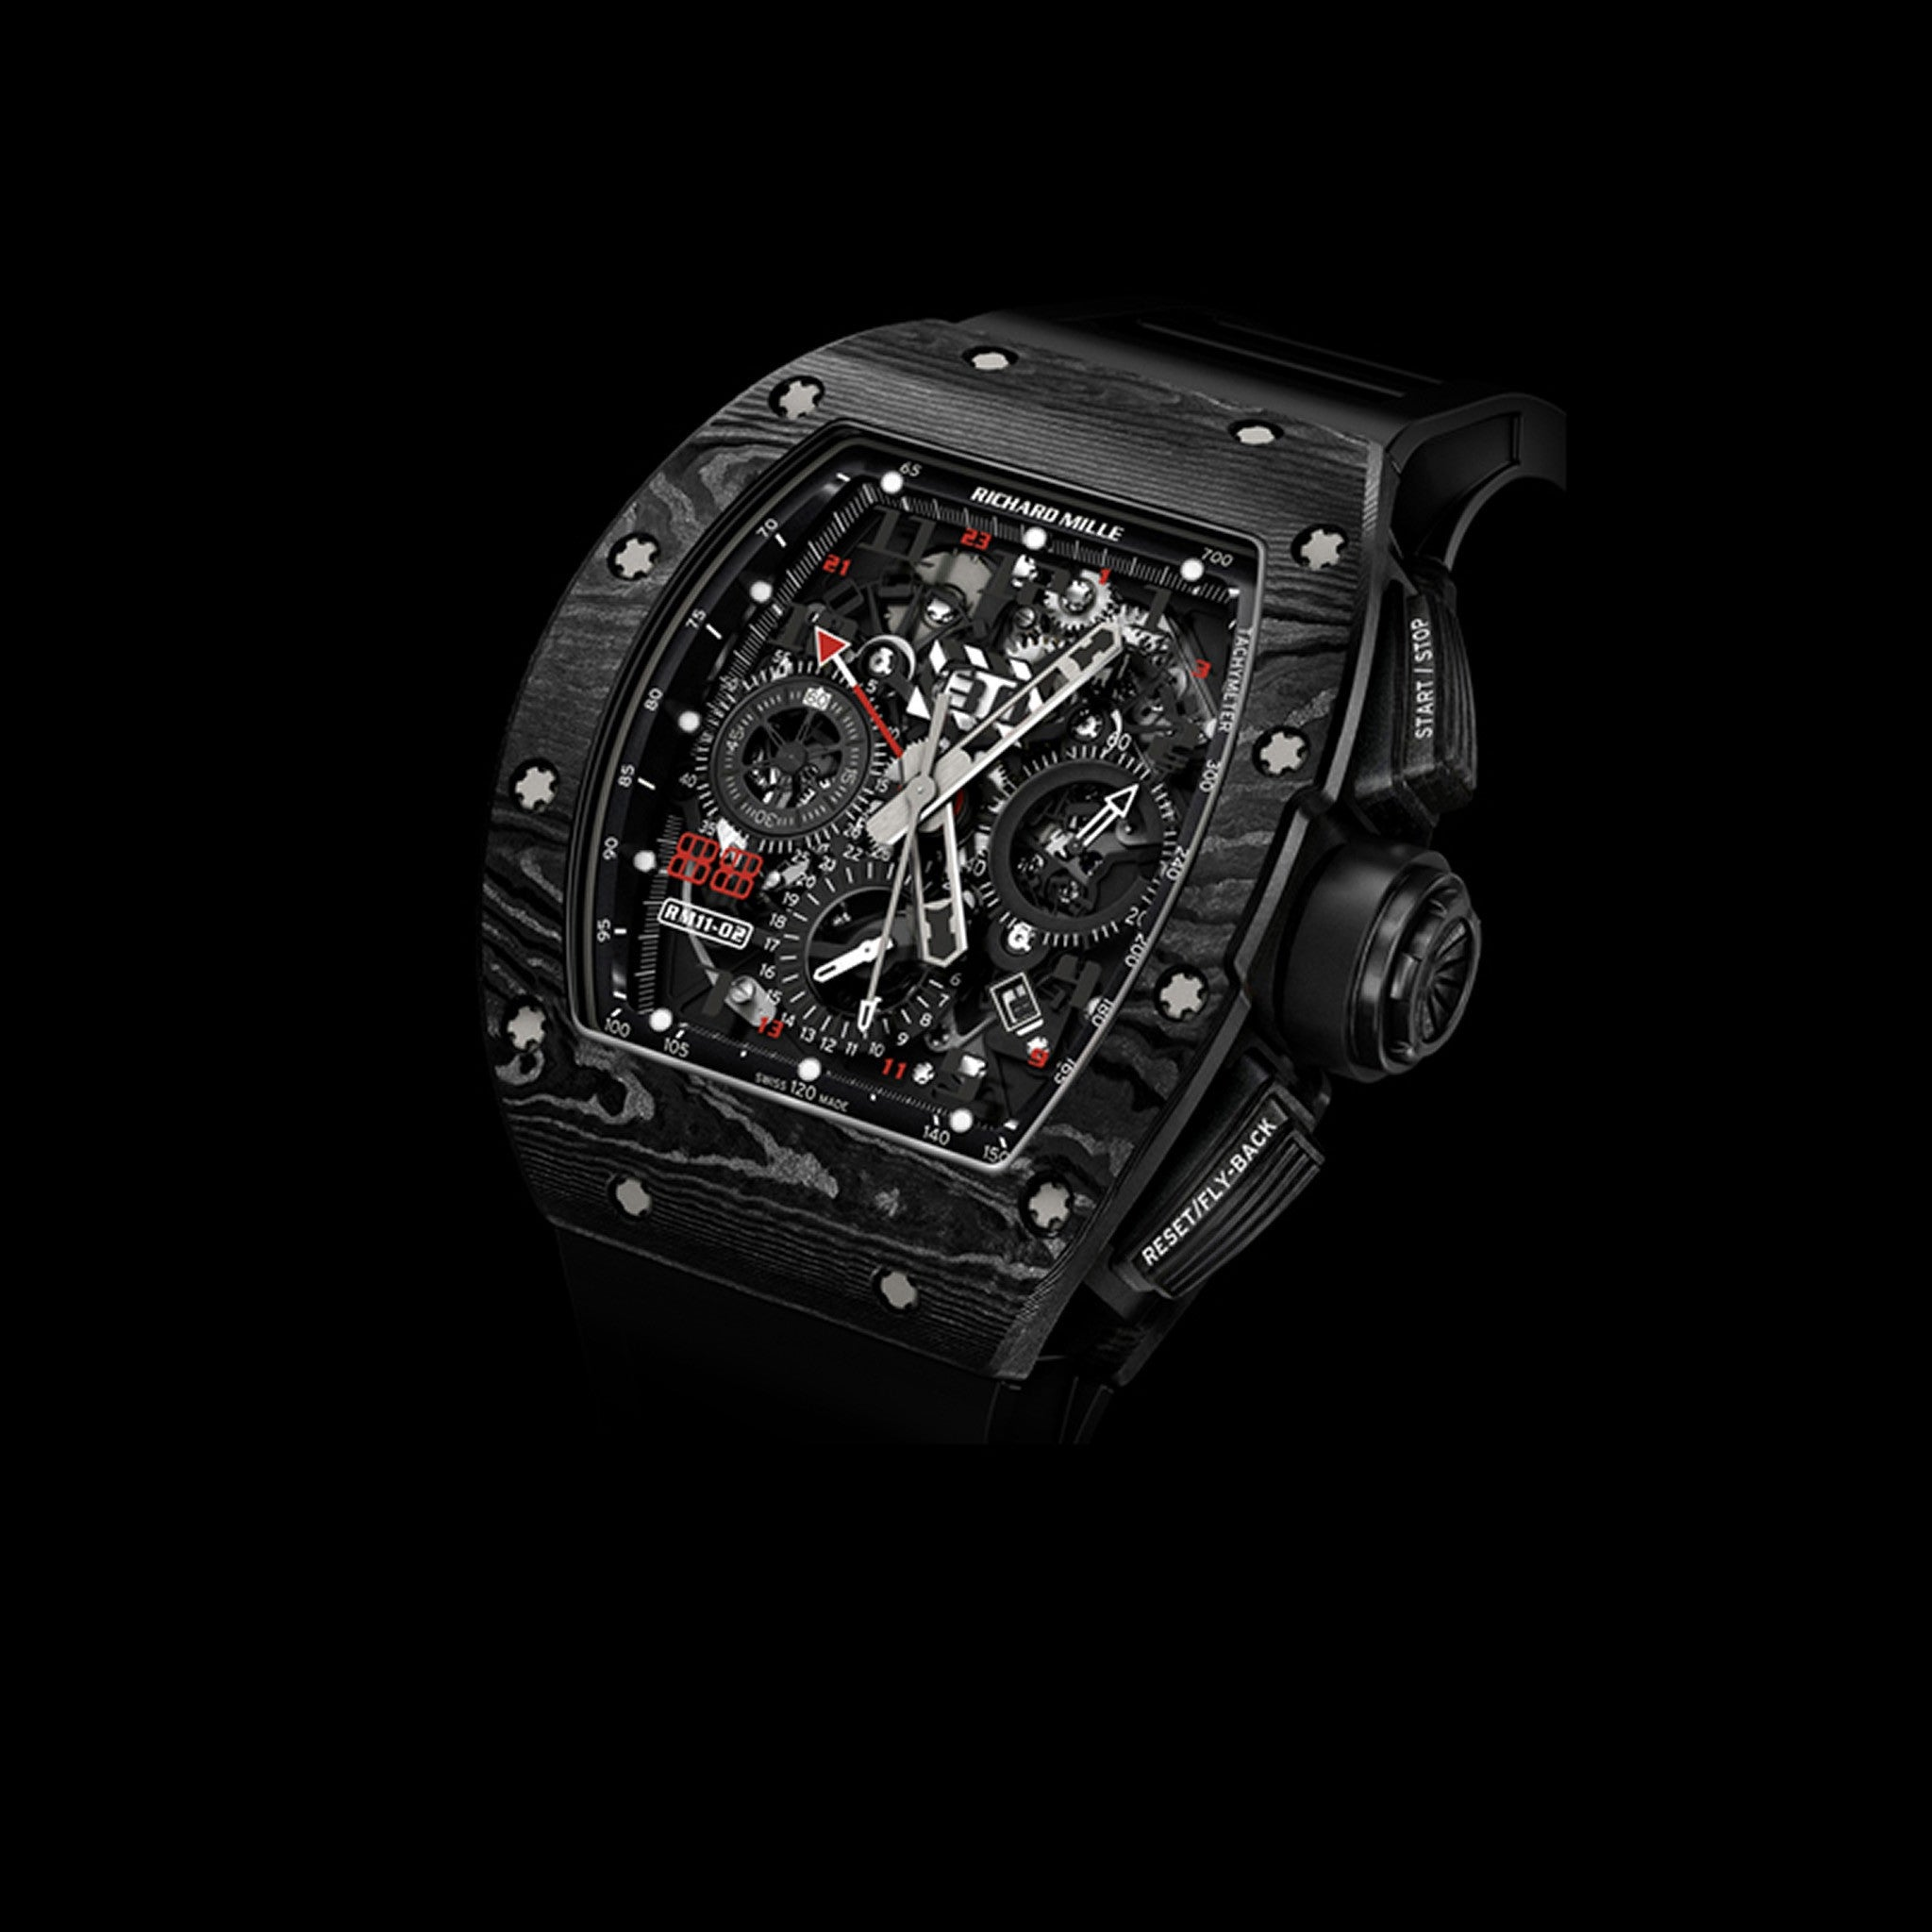 RM 11-02 GMT - Richard Mille